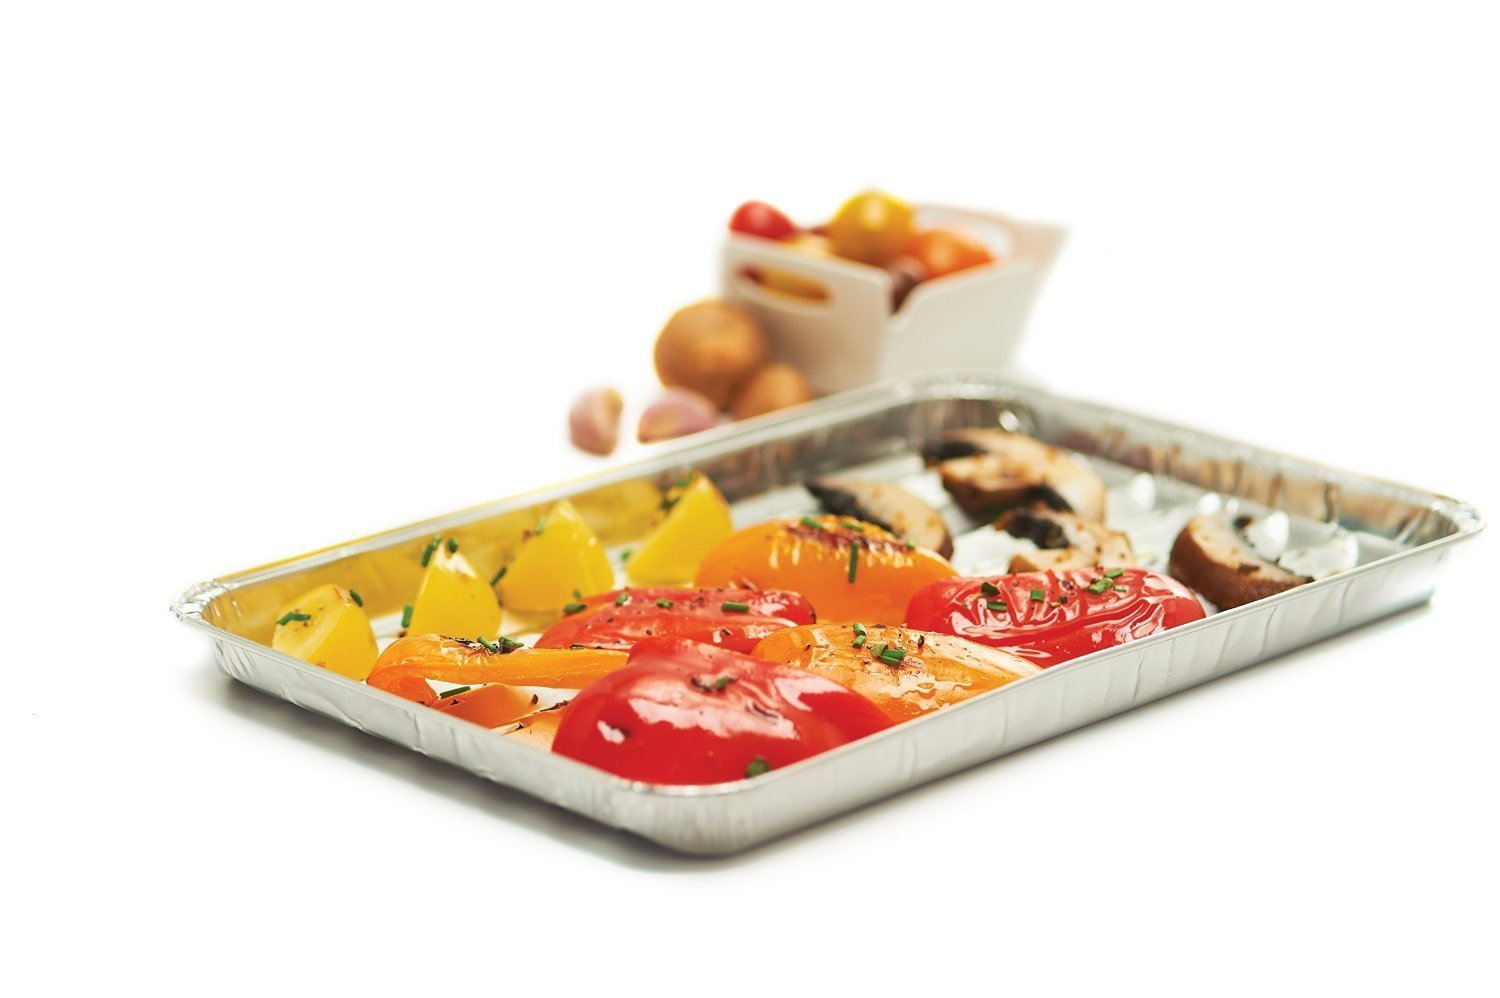 RL Treats BBQ Grill Pans/Aluminum Foil Grilling Trays, Pack of 3